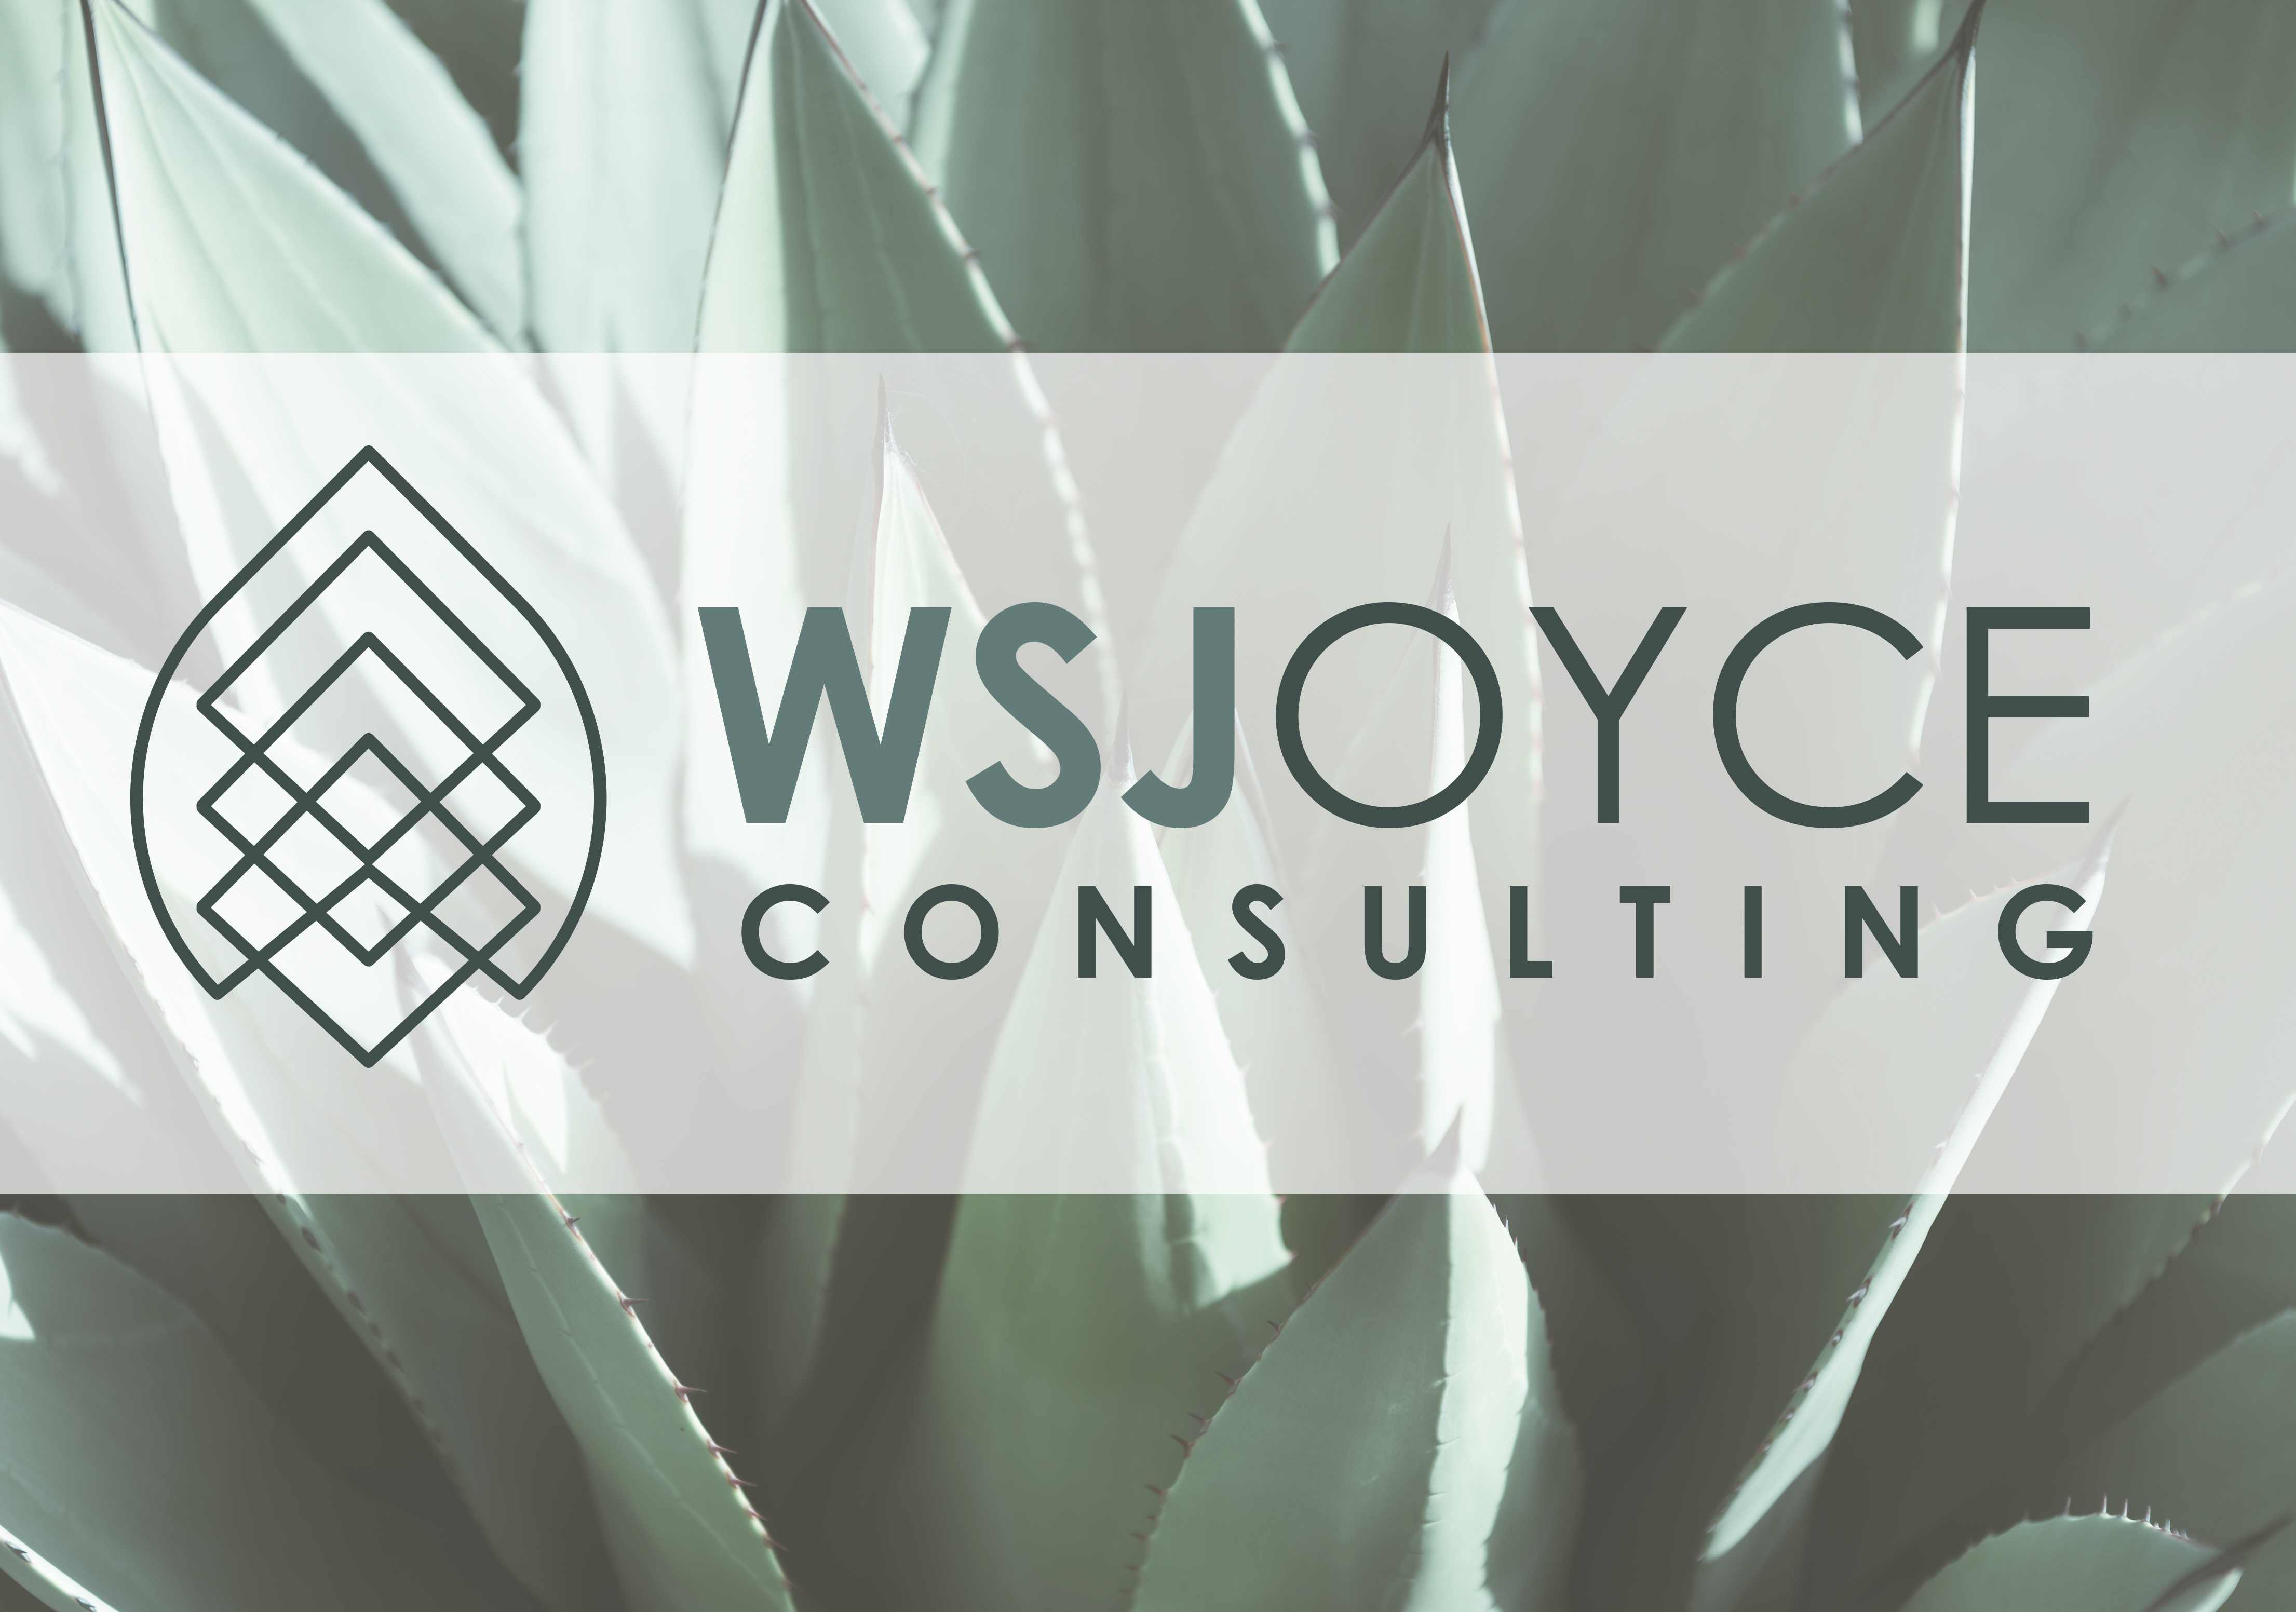 WSJoyce Consulting